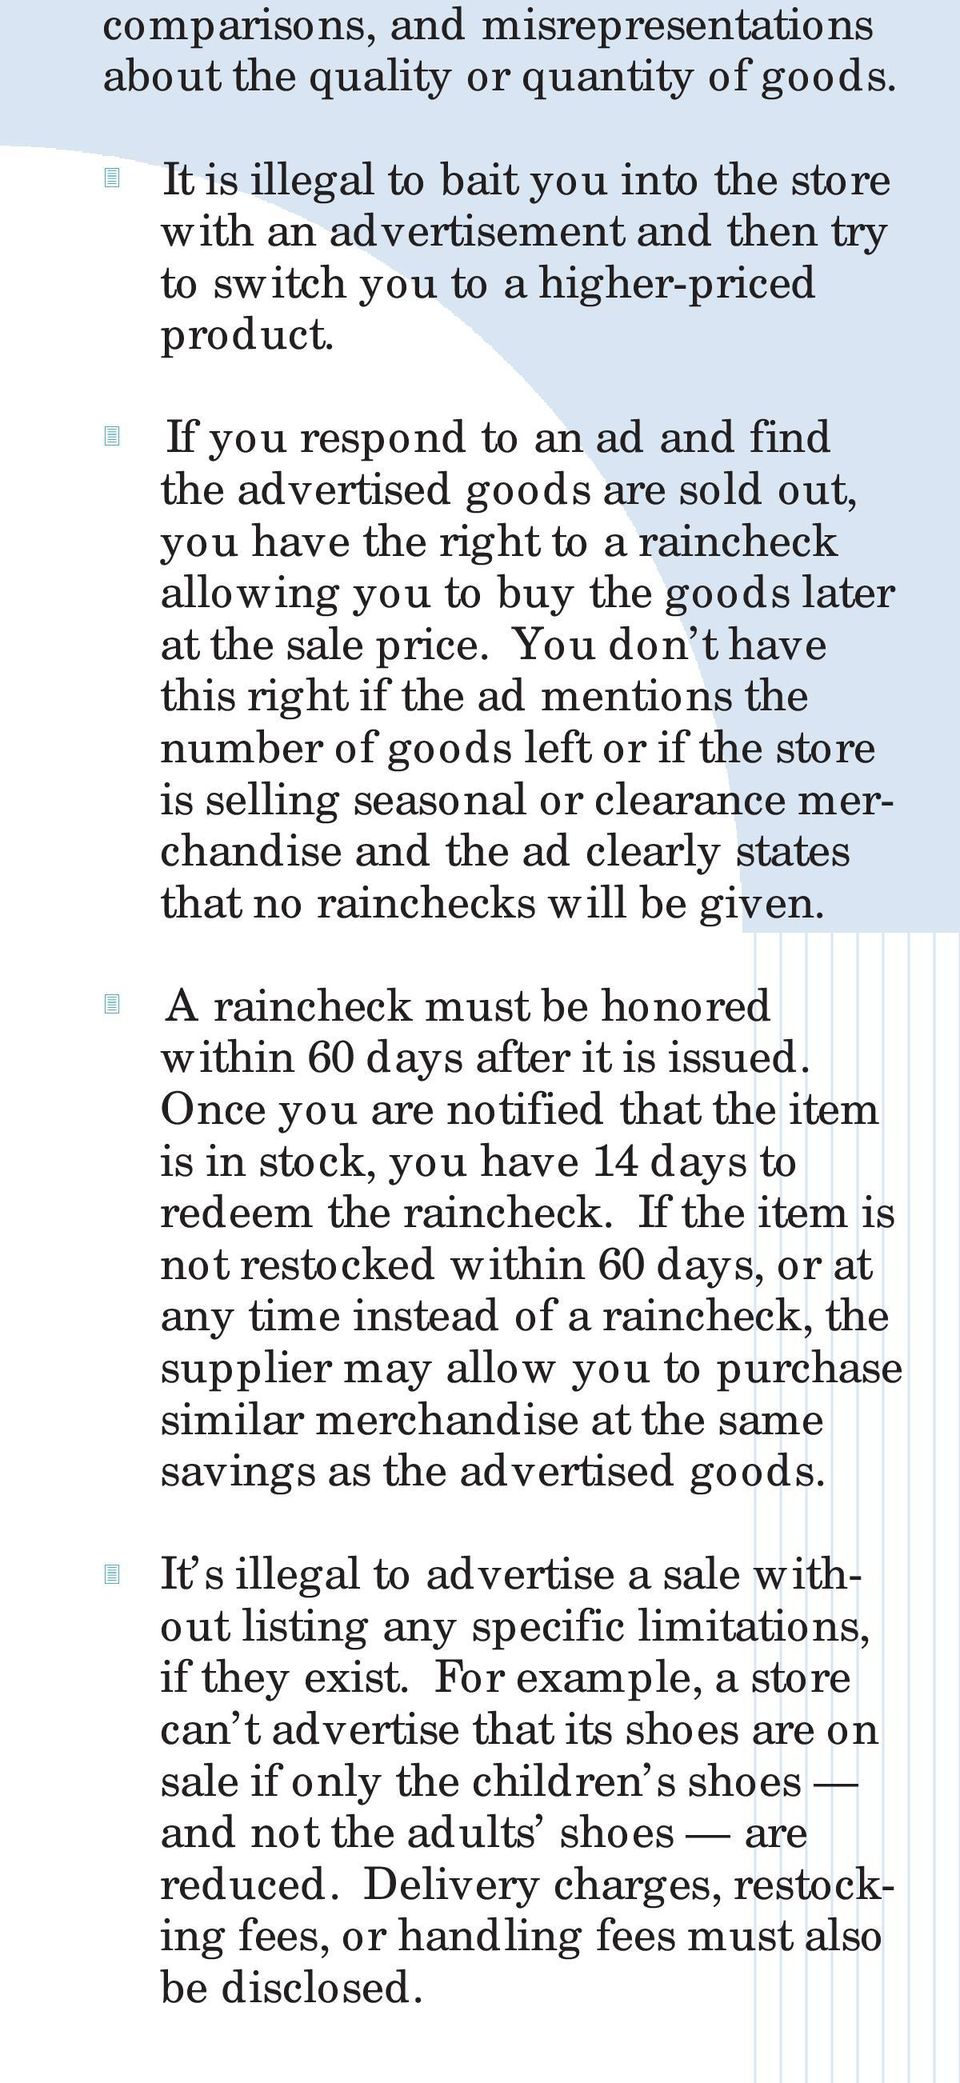 You don t have this right if the ad mentions the number of goods left or if the store is selling seasonal or clearance merchandise and the ad clearly states that no rainchecks will be given.